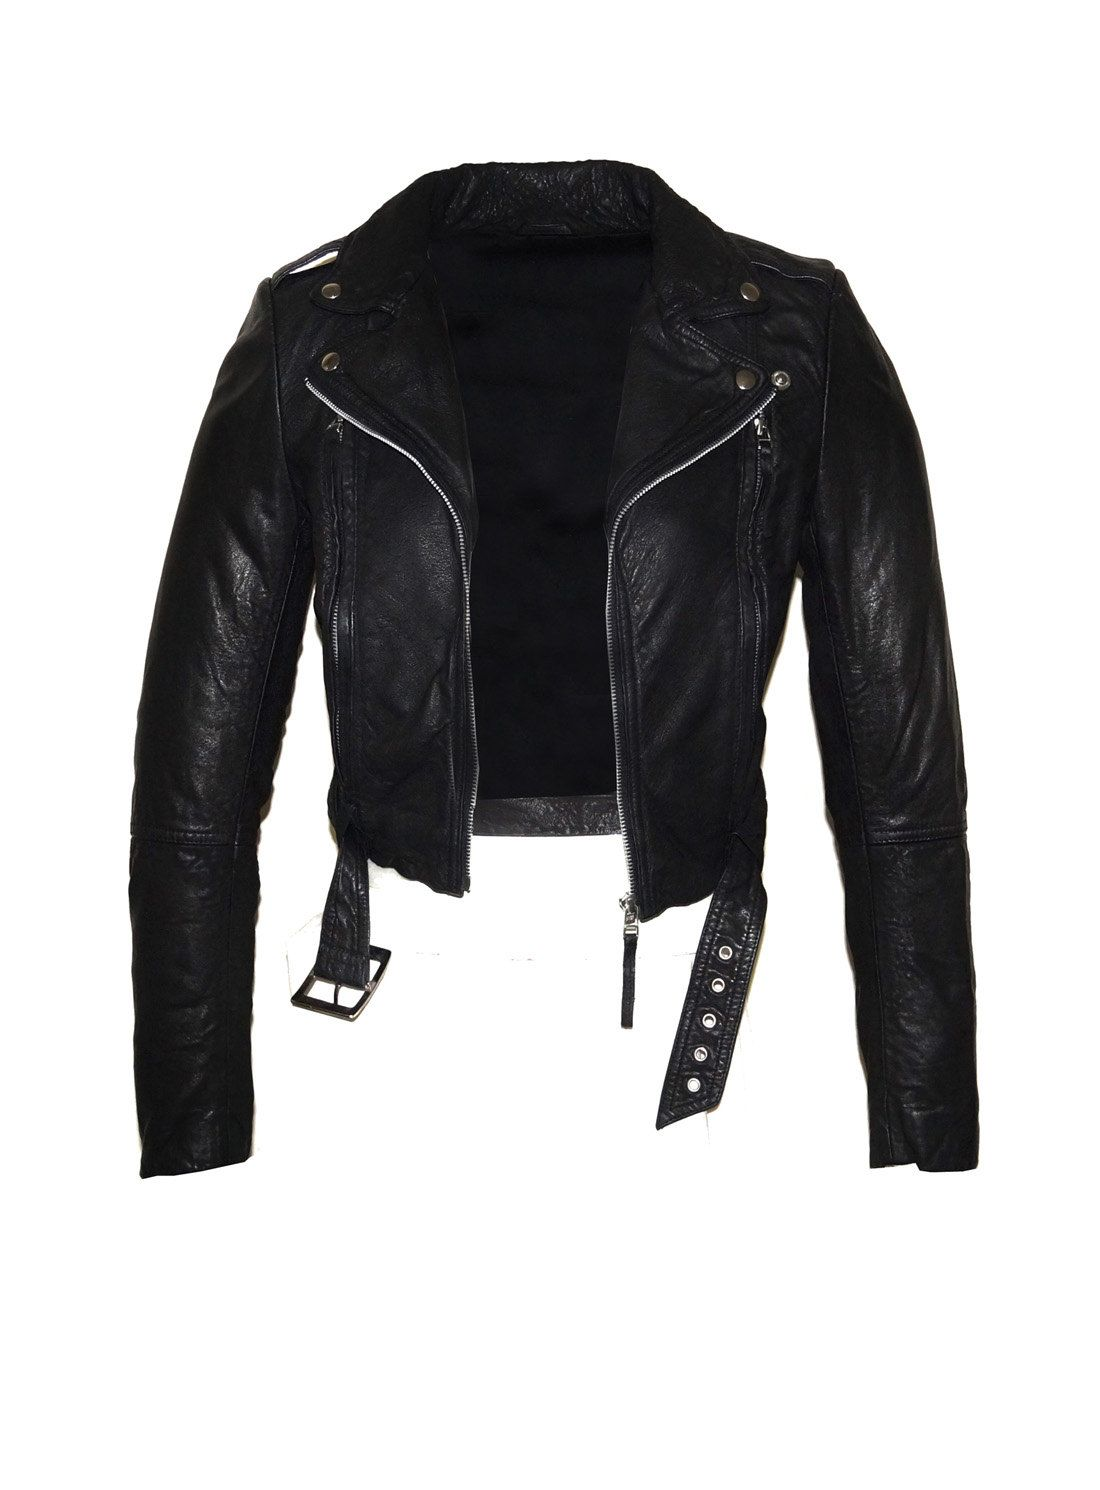 80361212d Hand Made Short Cropped Bubble Leather Motorcycle Biker Women Jacket with  Leather Belt by aarna101 on Etsy